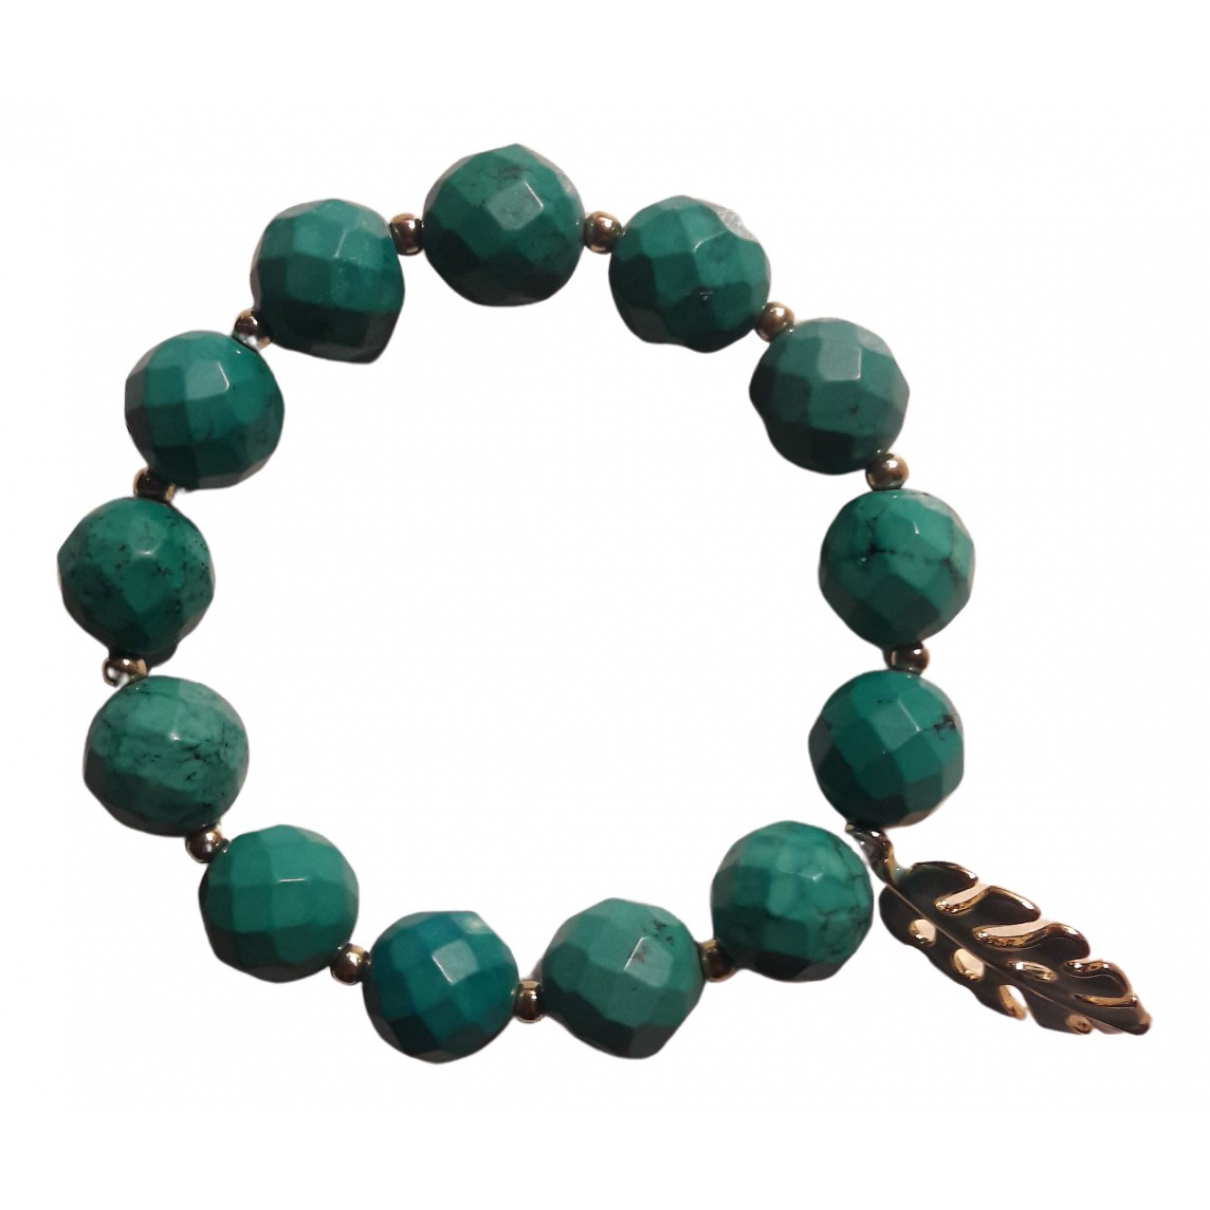 Non Signe / Unsigned Turquoises Armband in  Tuerkis Metall